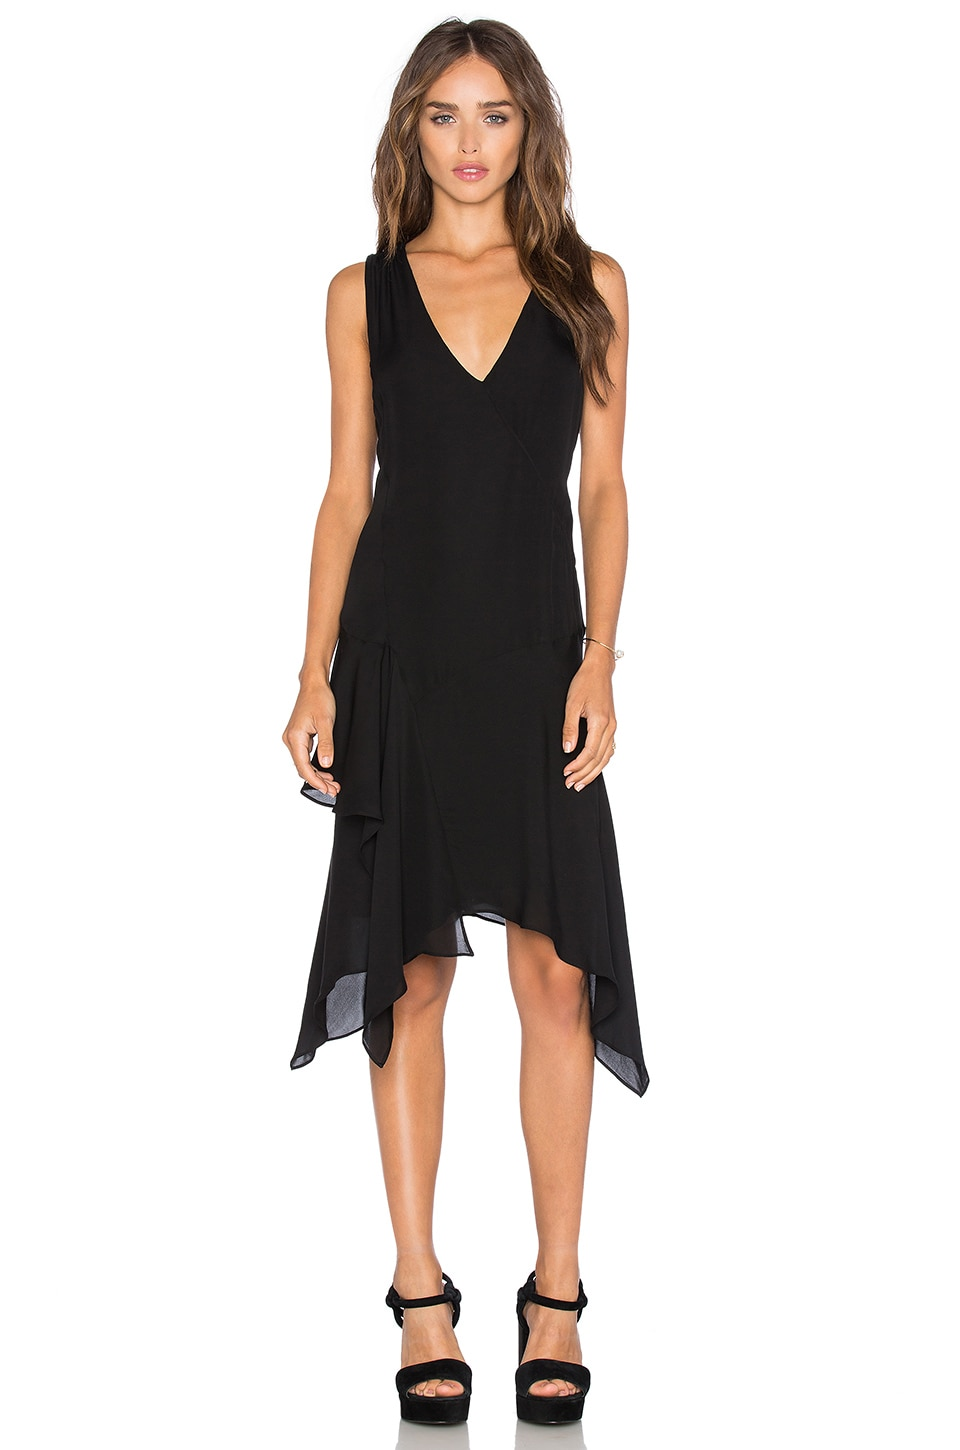 DEREK LAM 10 CROSBY Asymmetrical Tank Dress in Black